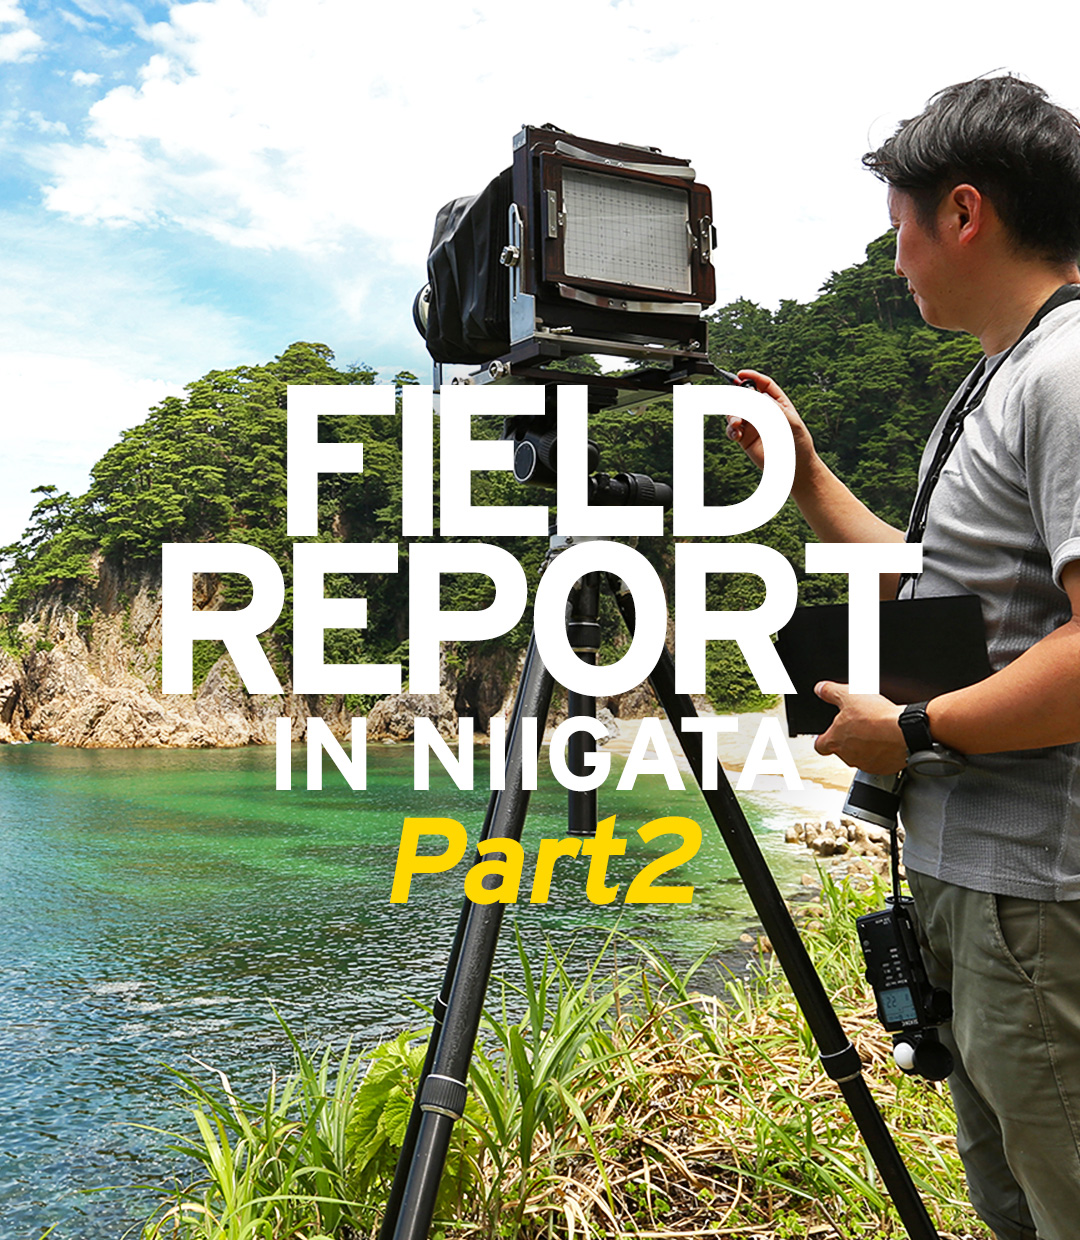 FIELD REPORT IN NIIGATA – Hints we learn from nature for Iwagumi – Part2